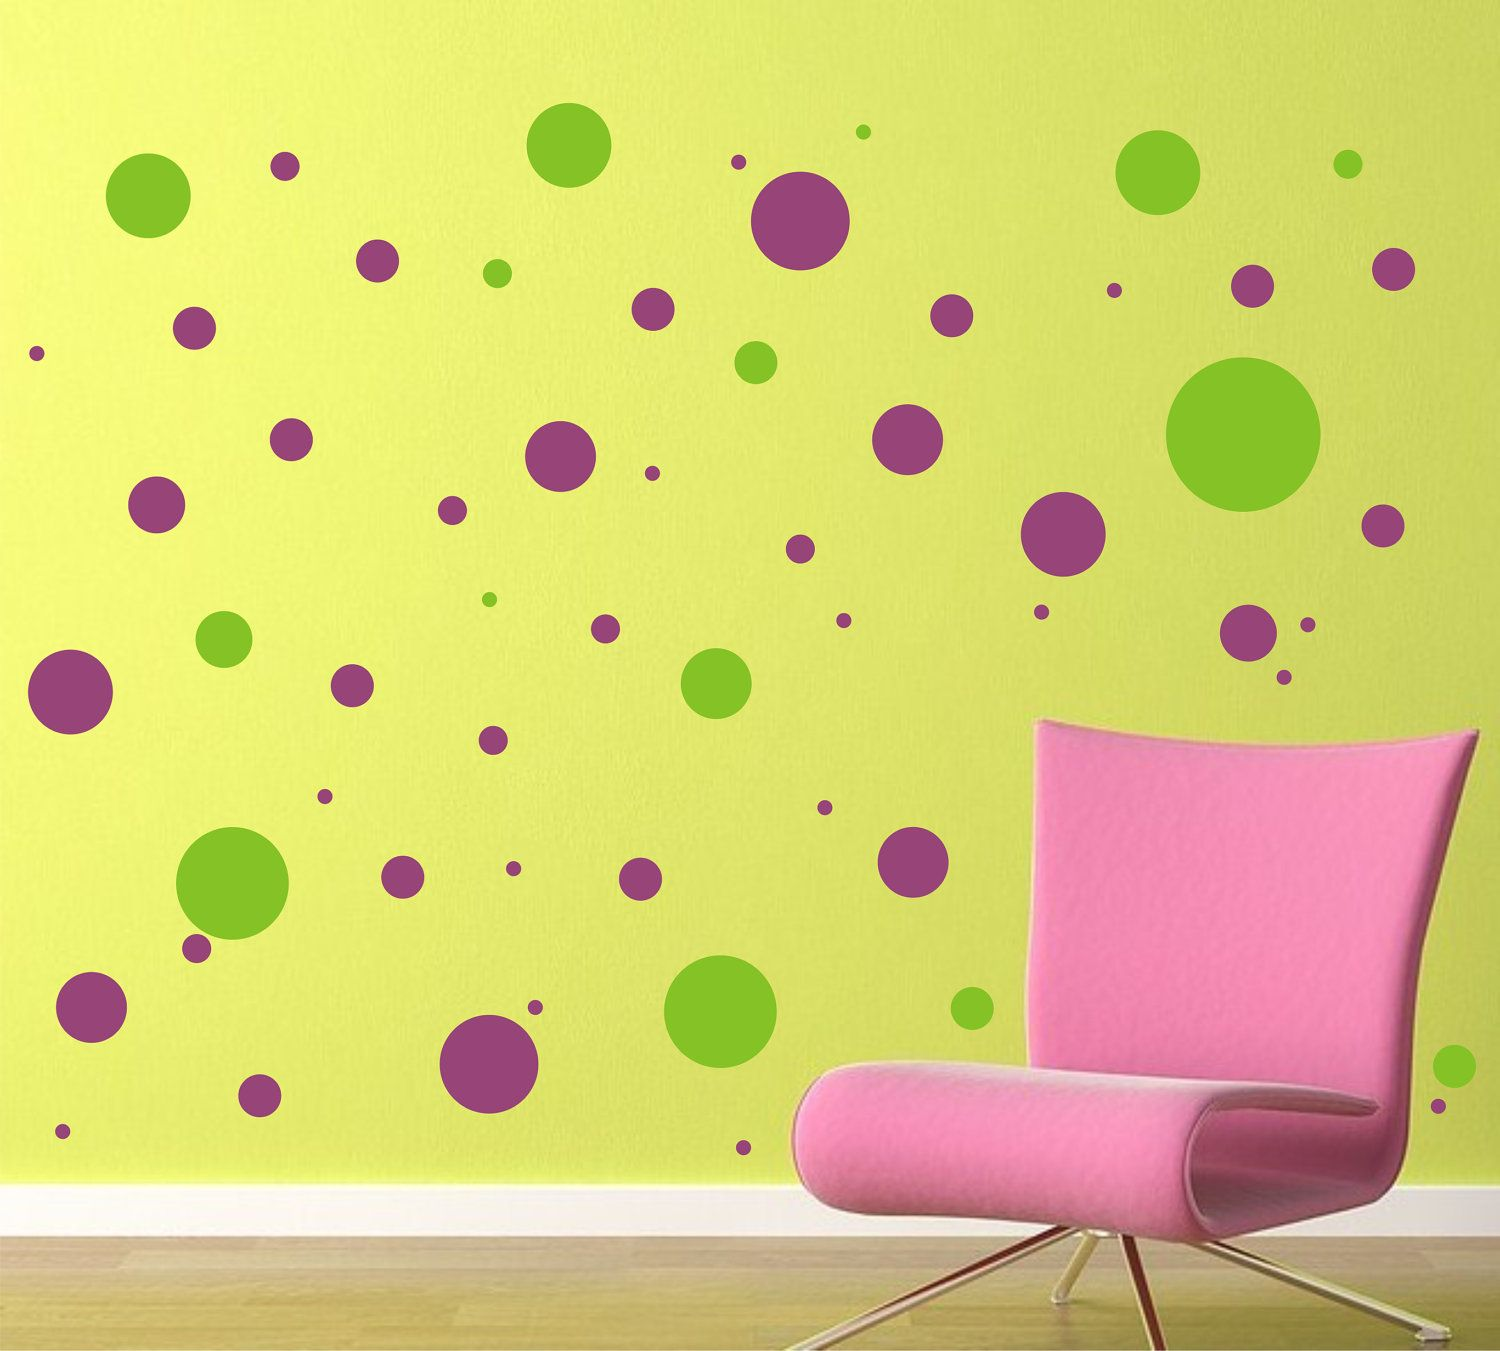 Polka Dot Vinyl Decals - Vinyl Wall Art - Fun for a Bedroom or ...